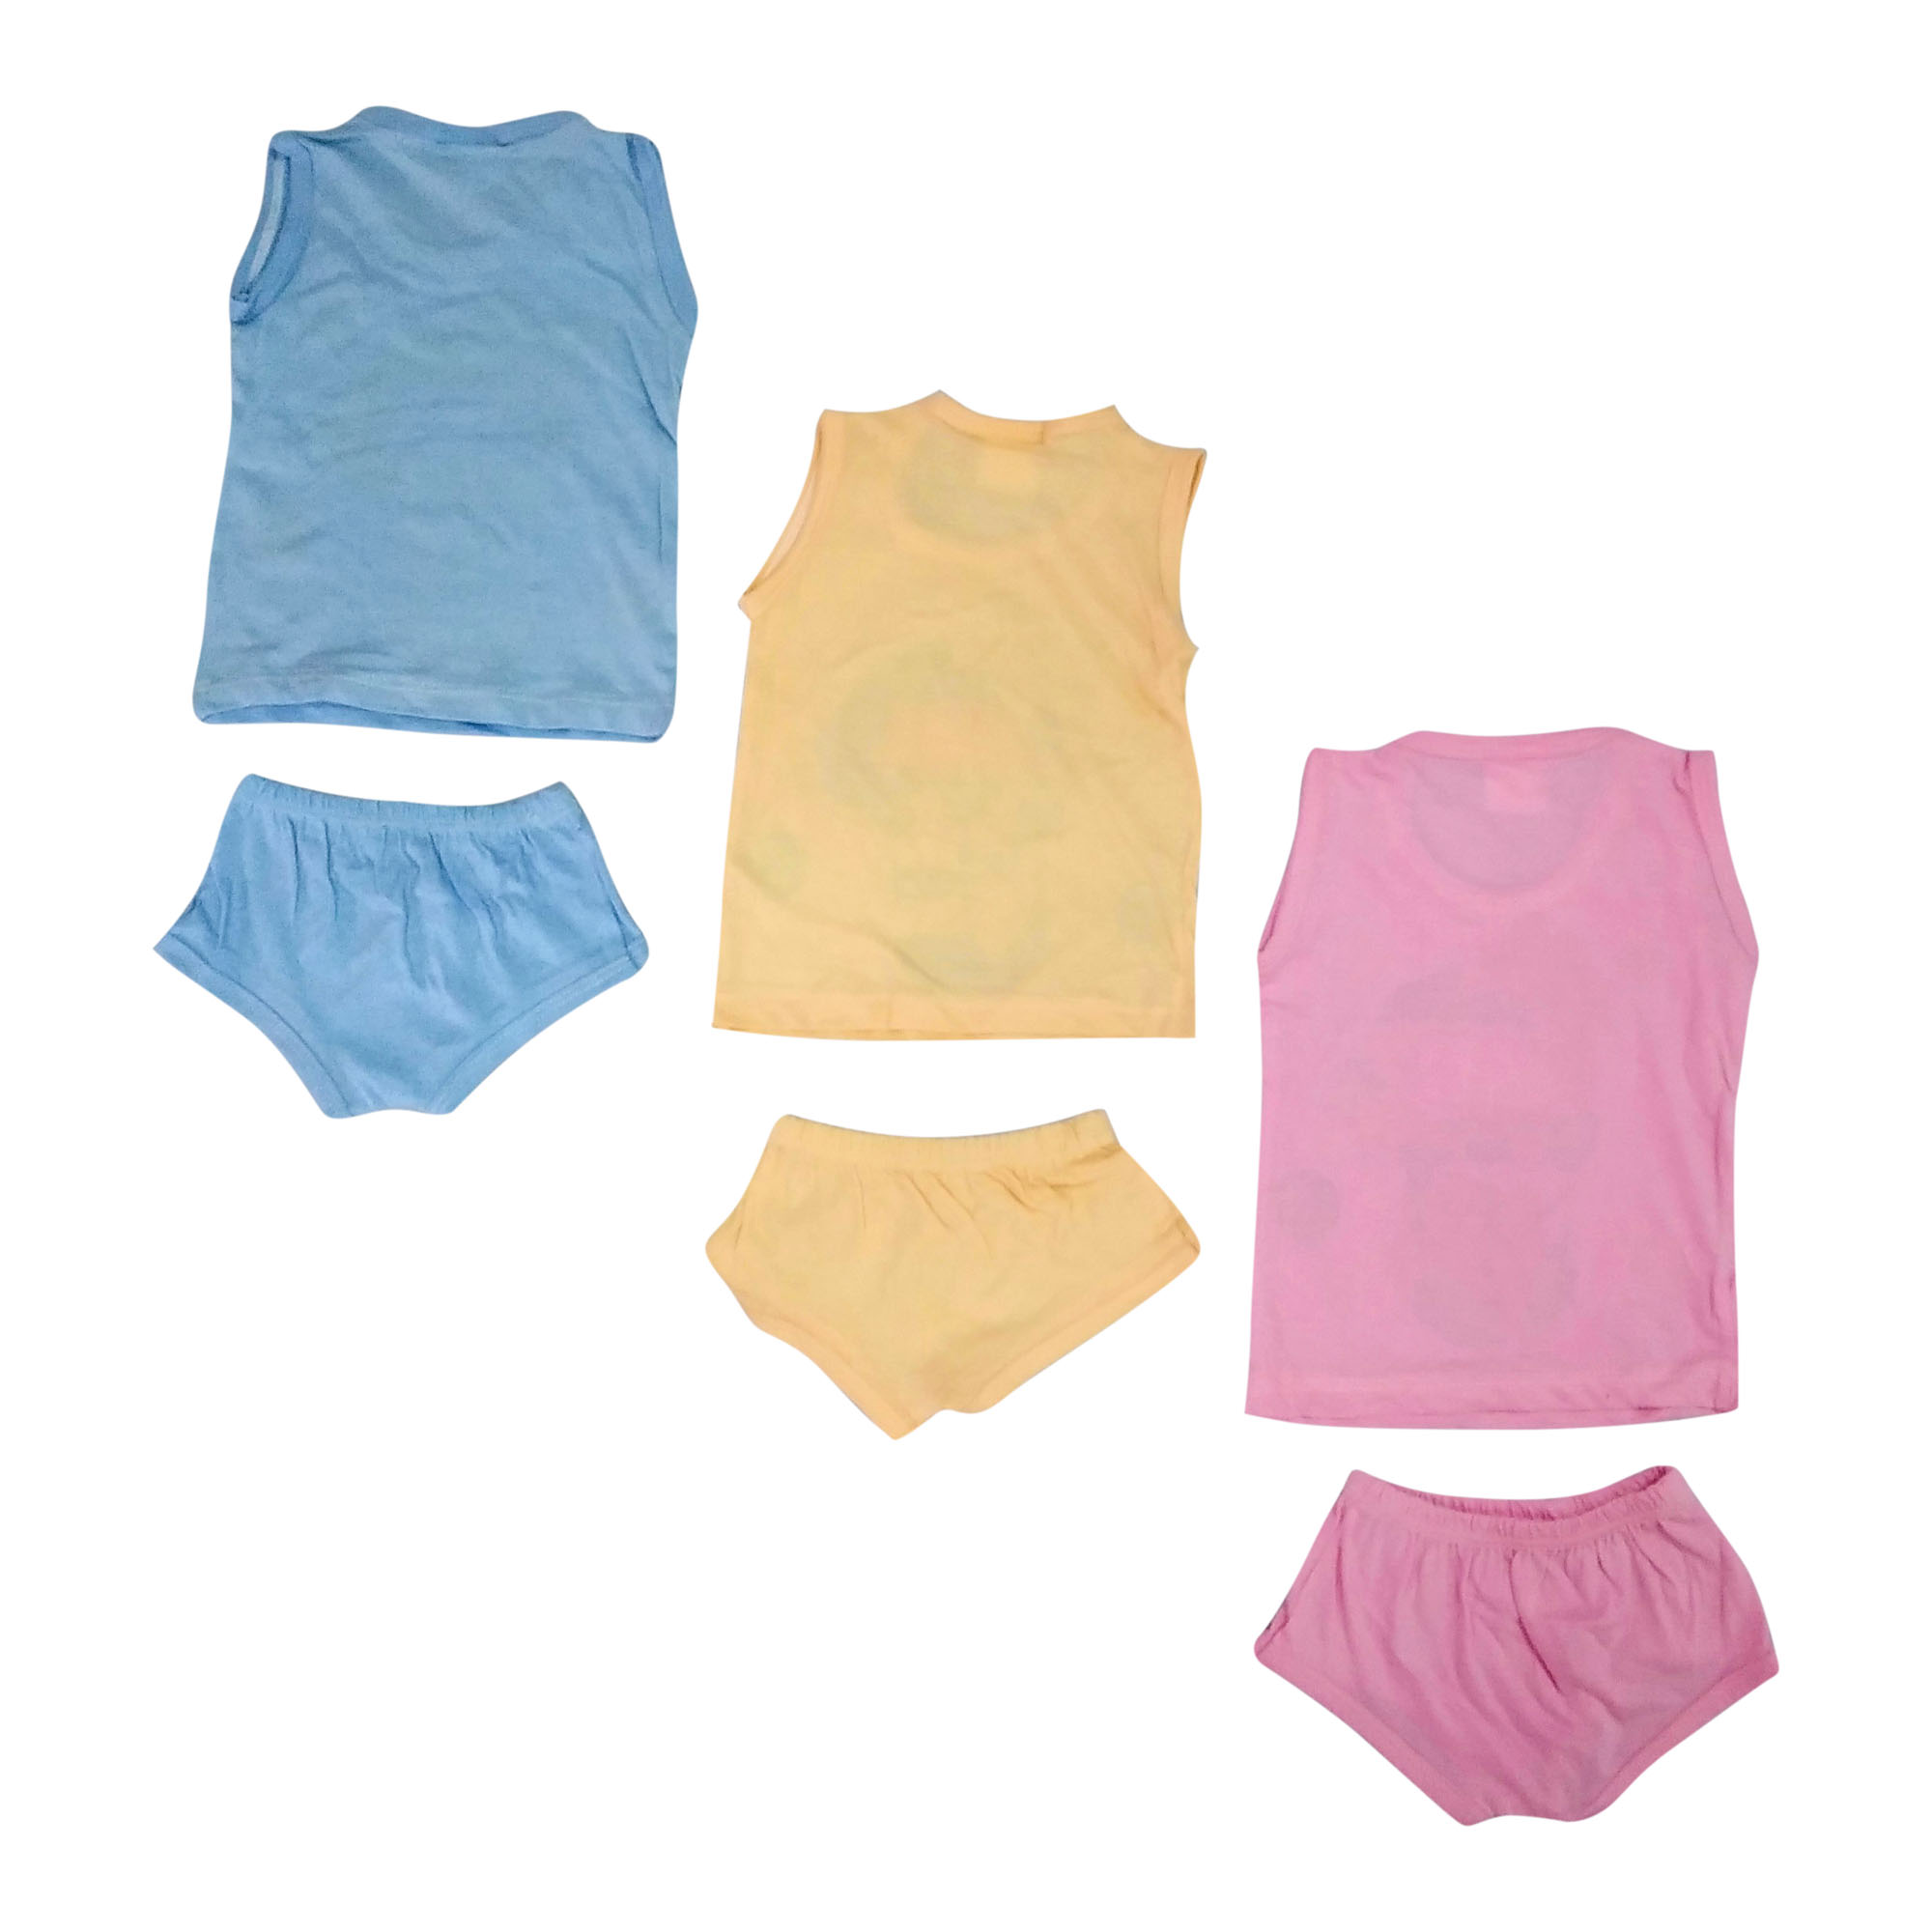 Trendy 3 Cotton Hosiery Shirt With 3 Pant Set - BC12